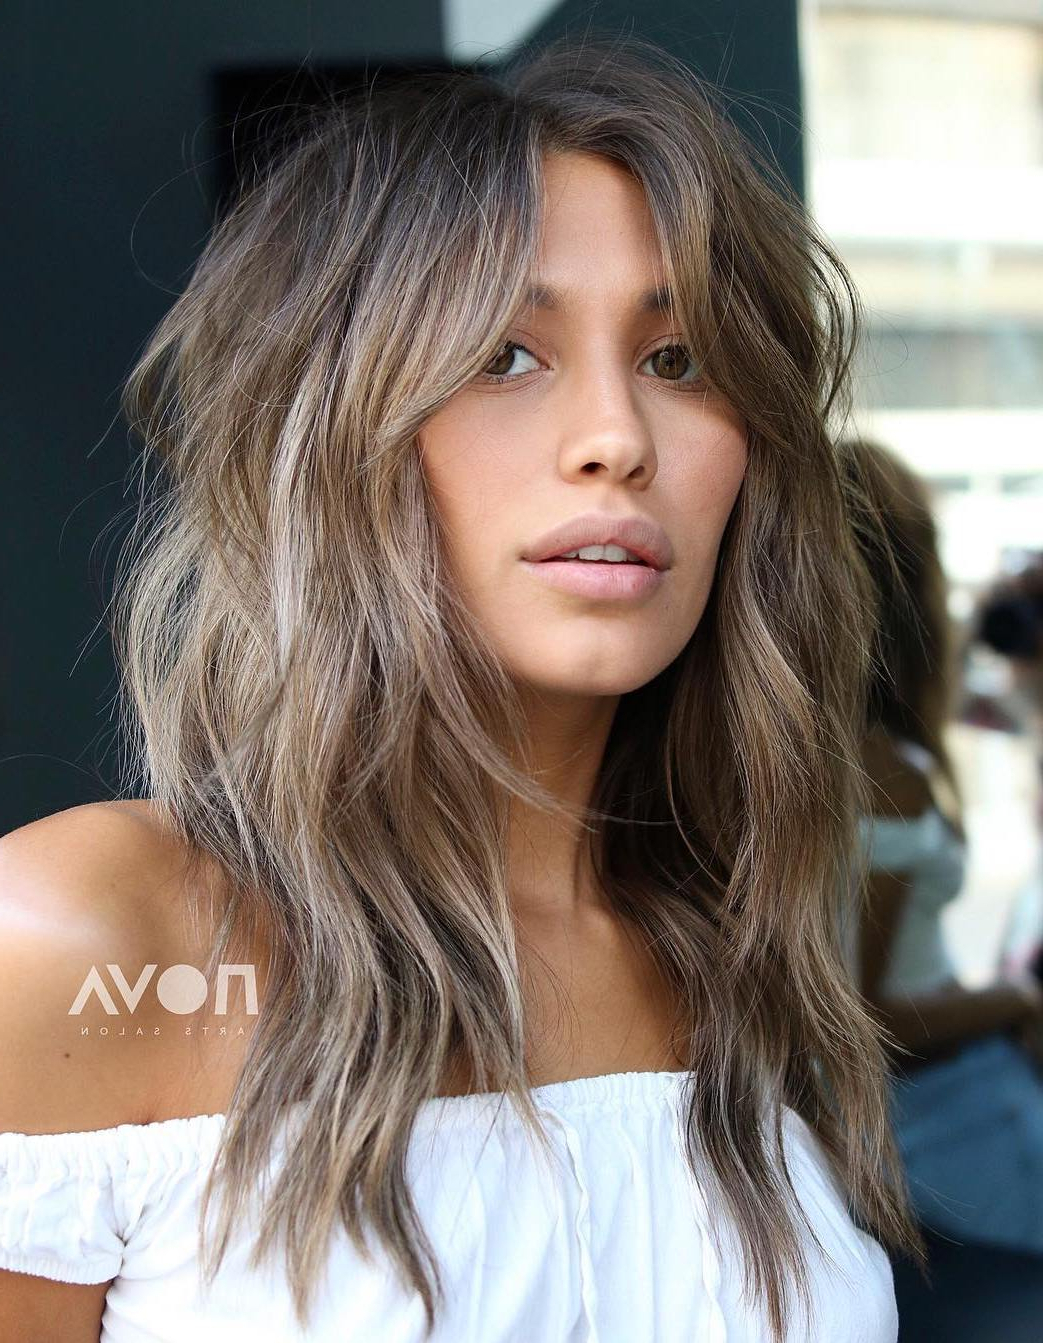 40 Modern Shag Haircuts For Women To Make A Splash Within Layered Waves Shag Haircuts (View 12 of 20)